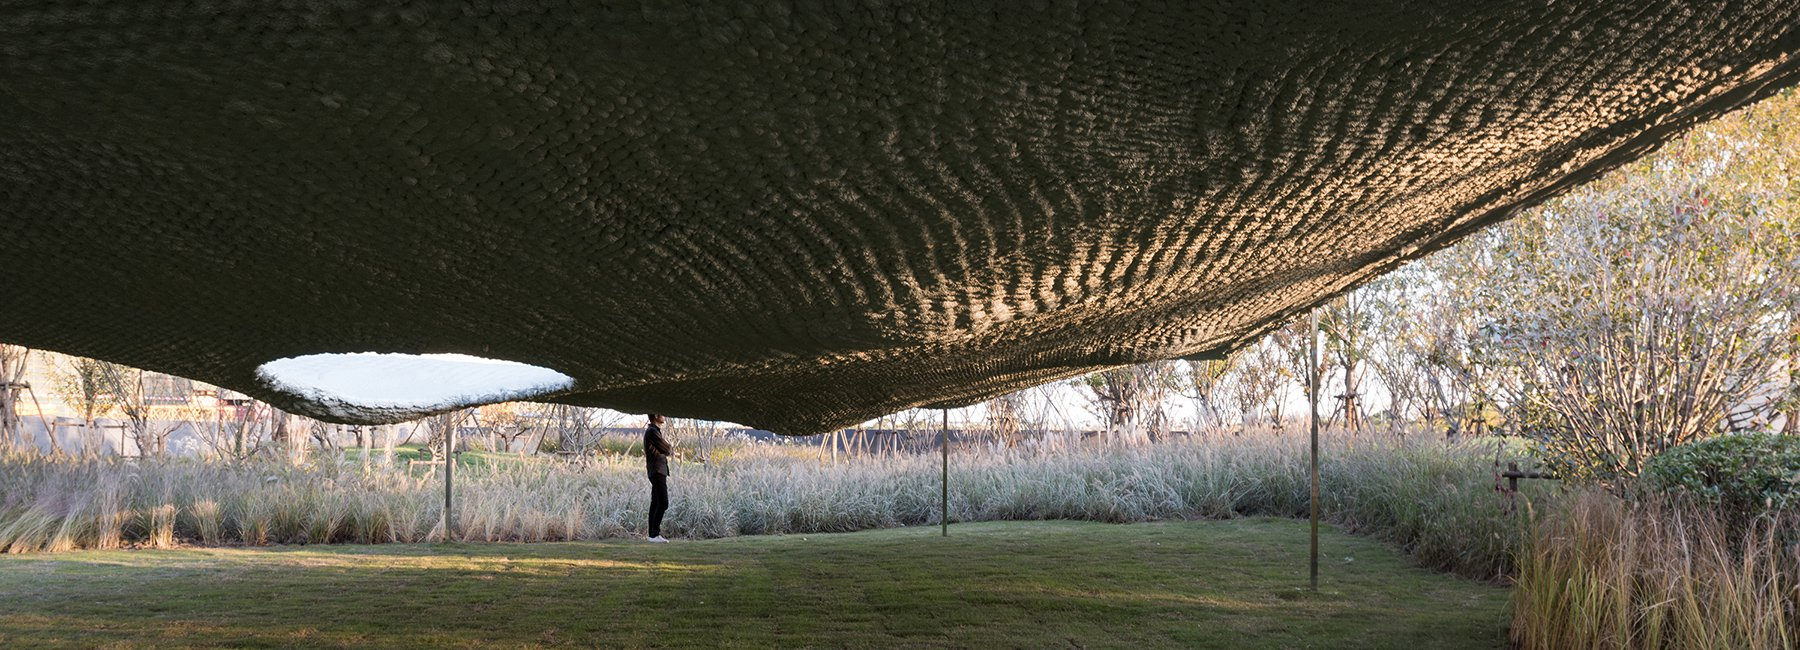 the undulating 'soft matter' pavilion takes inspiration from its site's unnatural geology